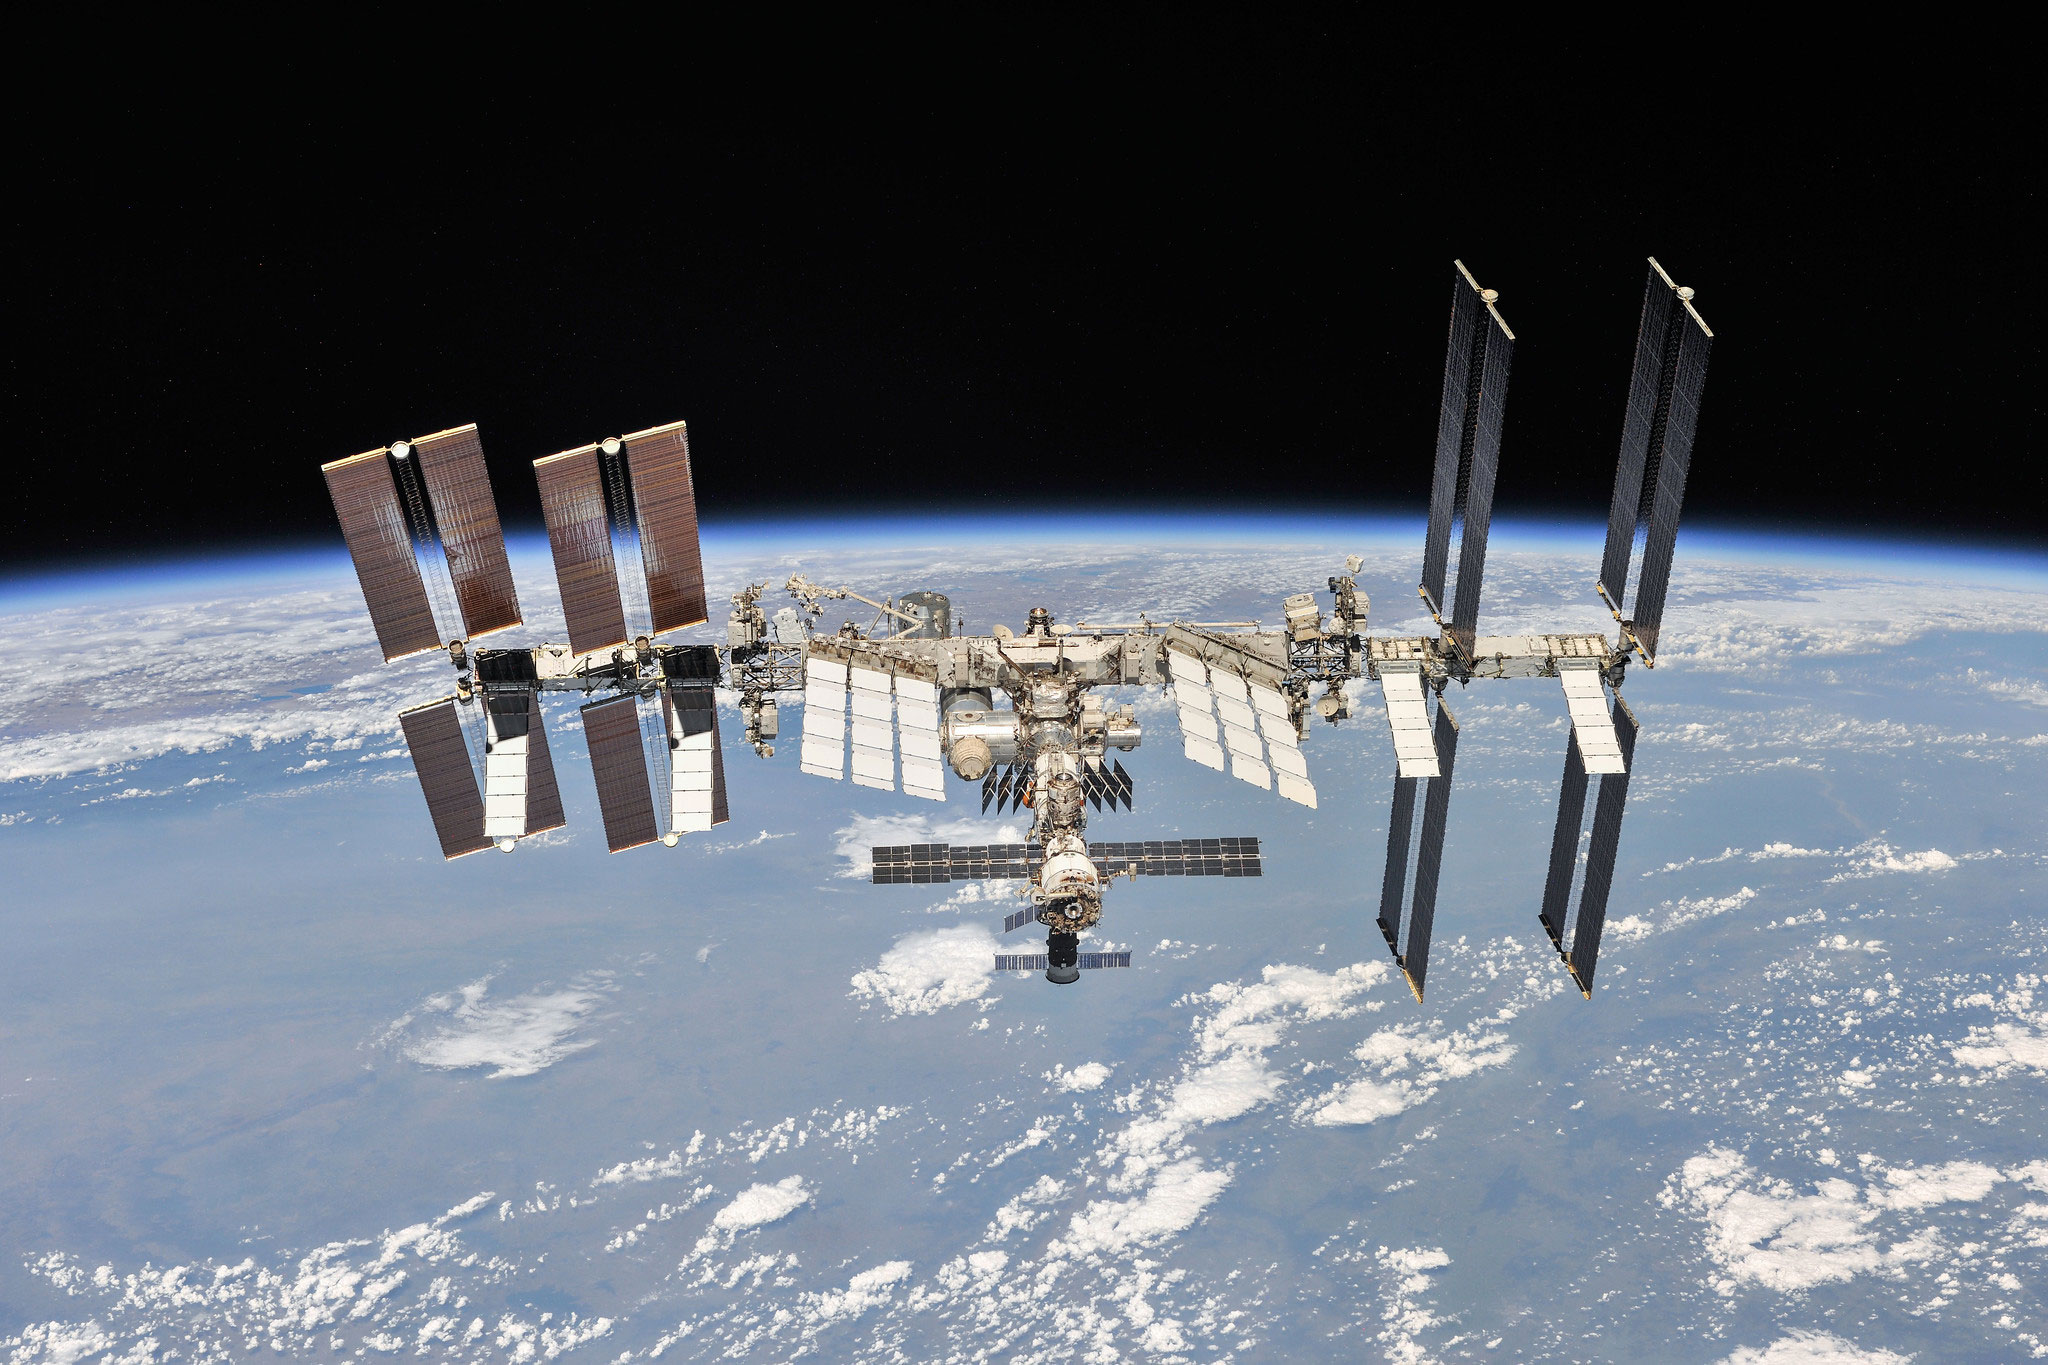 NASA admin warns ISS space junk problem is getting worse after 3 near collisions